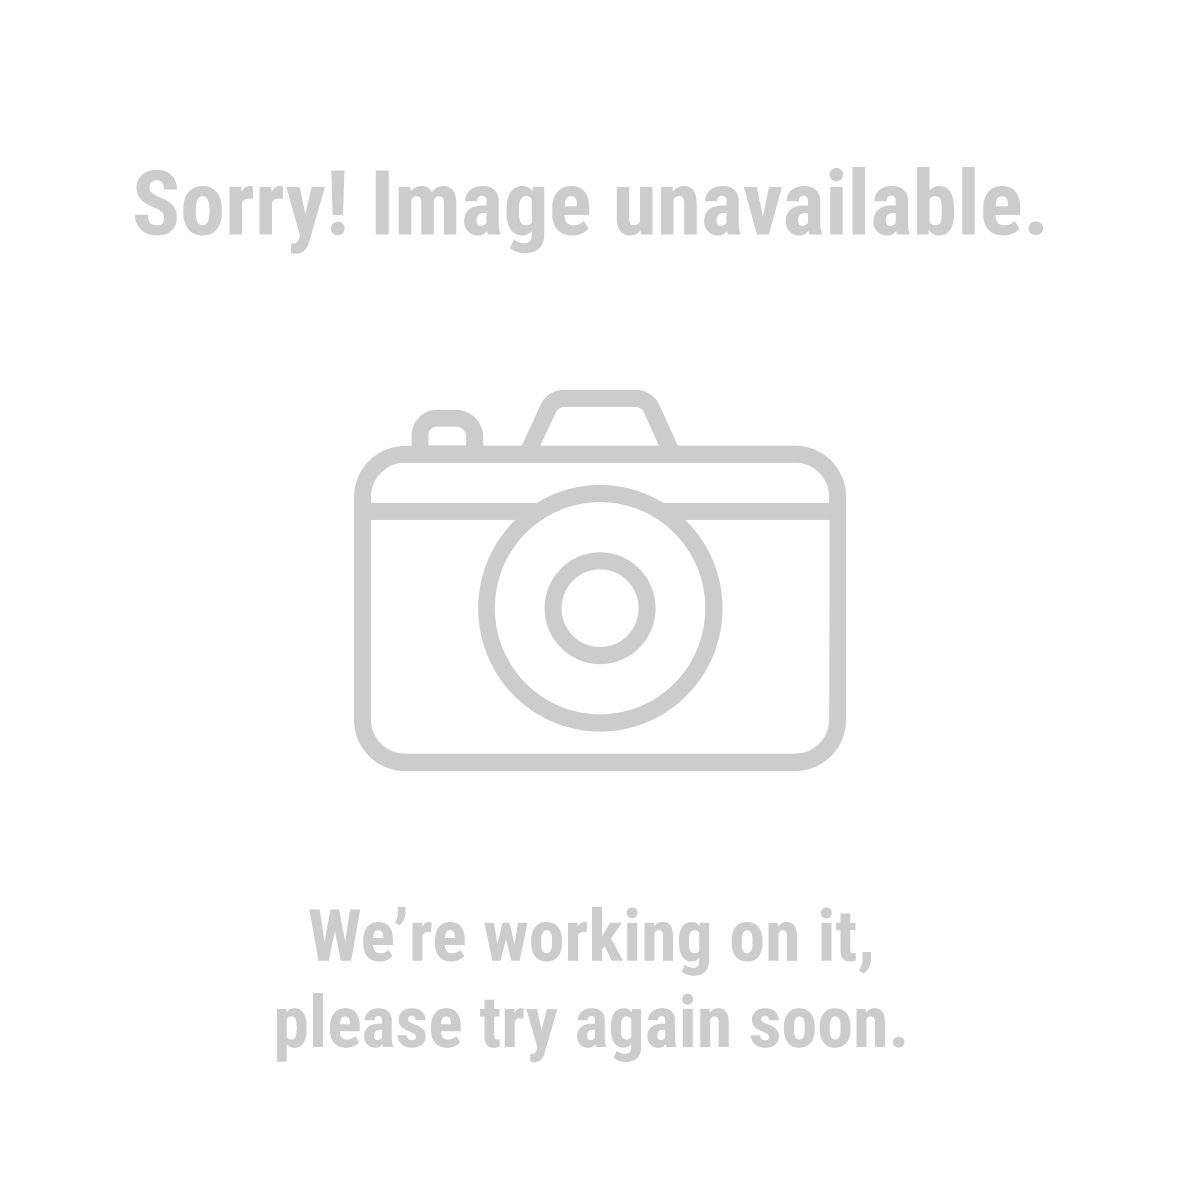 Central-Machinery 61162 2-1/2 gal. Wet/Dry Vacuum/Blower